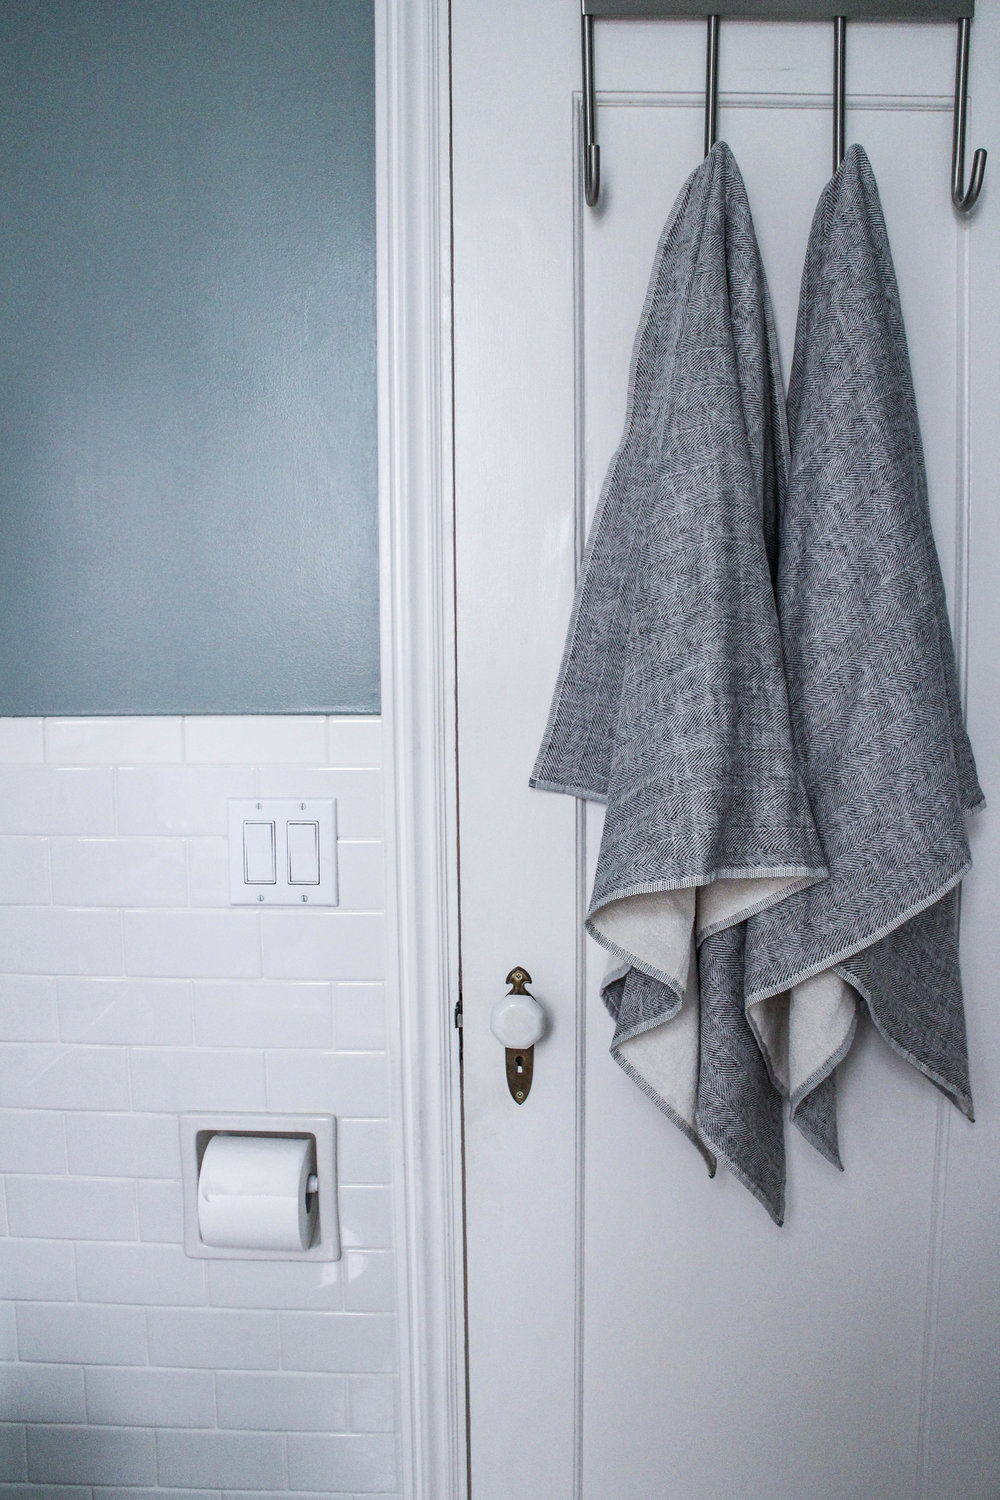 Anne Therese - Conscious Home-11Coyuchi organic towels for a conscious home - Anne Therese from Hey Change